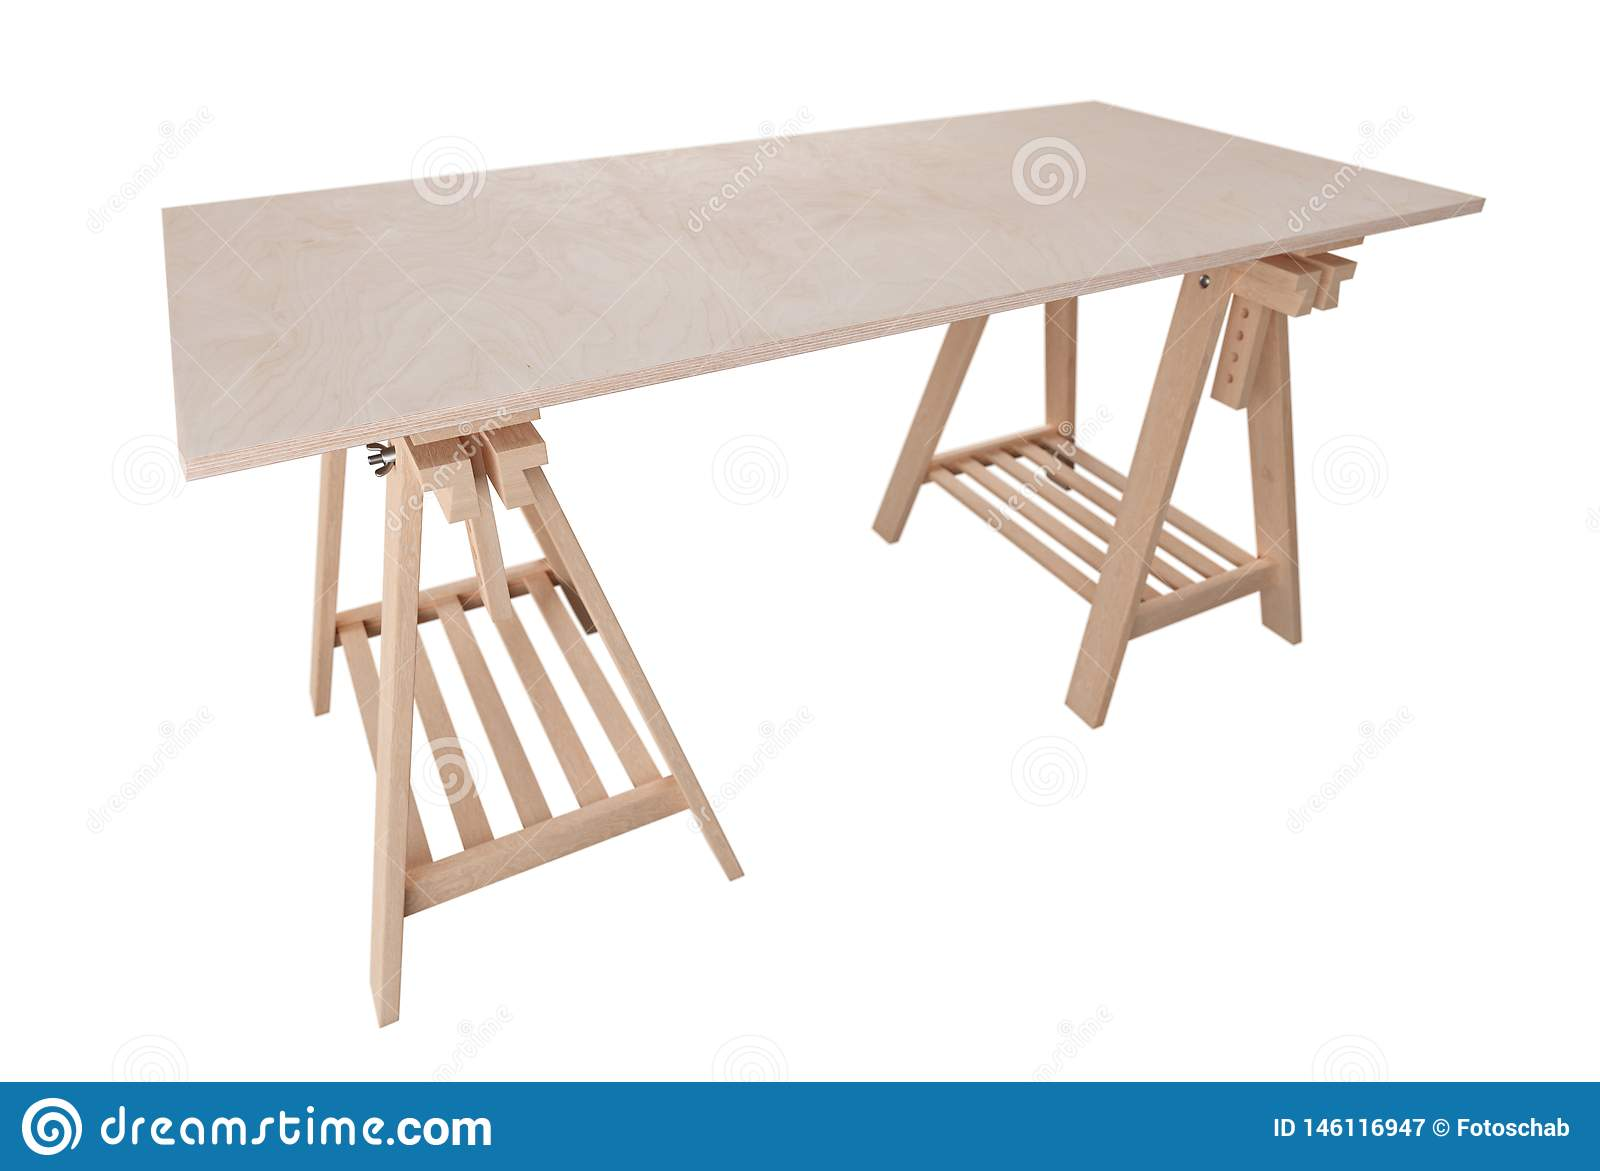 Wooden plywood shelf on two trestles, isolated on white background, 3d rendering